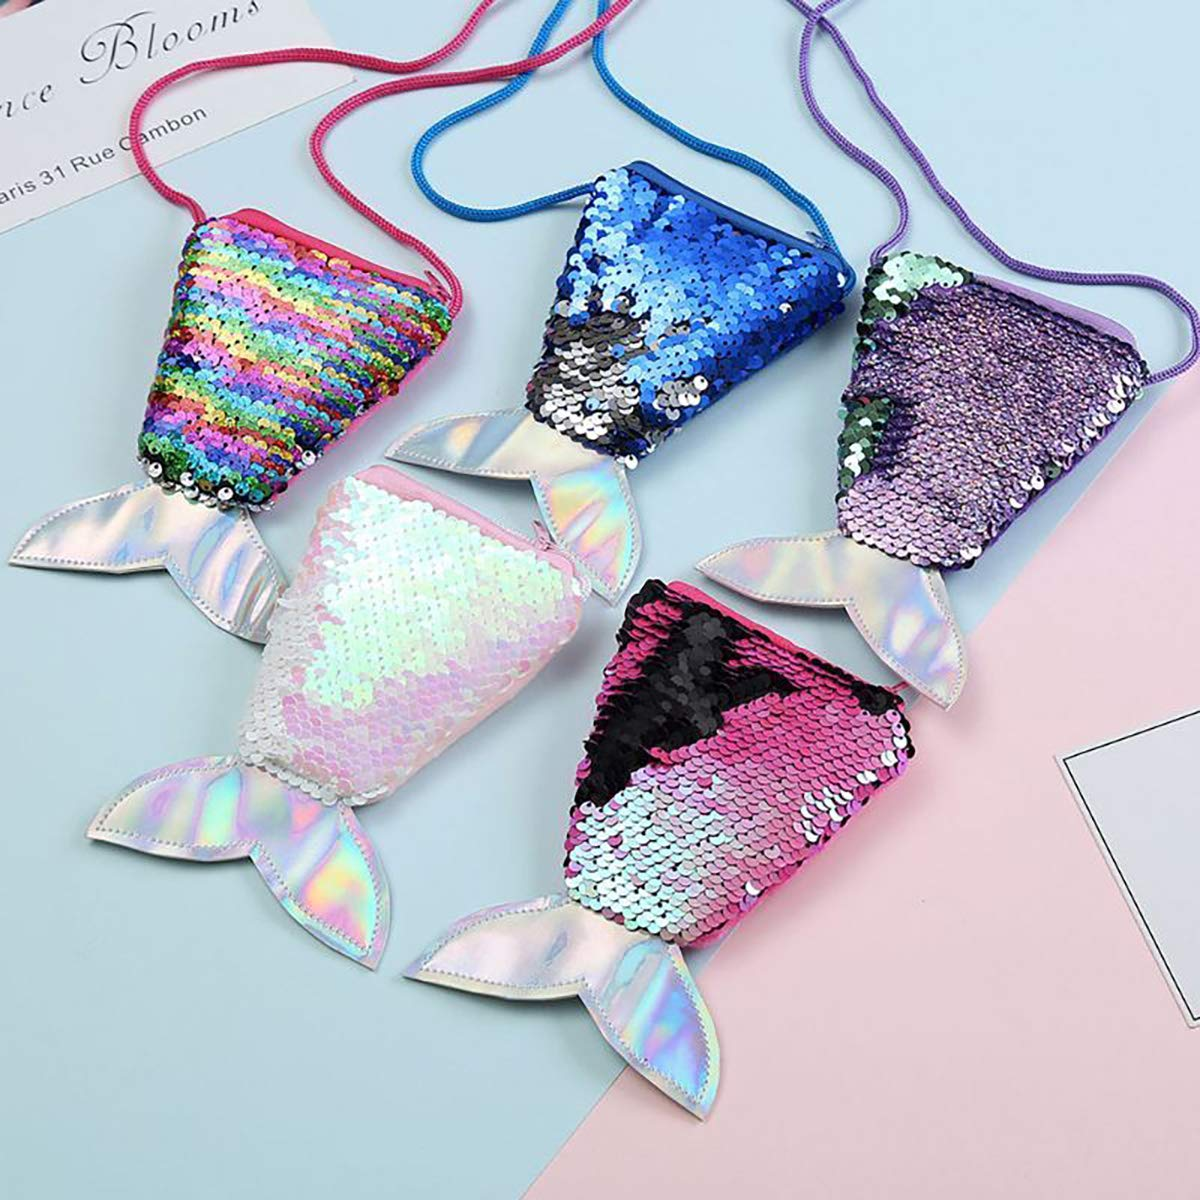 Mermaid Sequins Plush Little Bag Perfect Novelty Gift for Girls 3 to 10 Years Kids